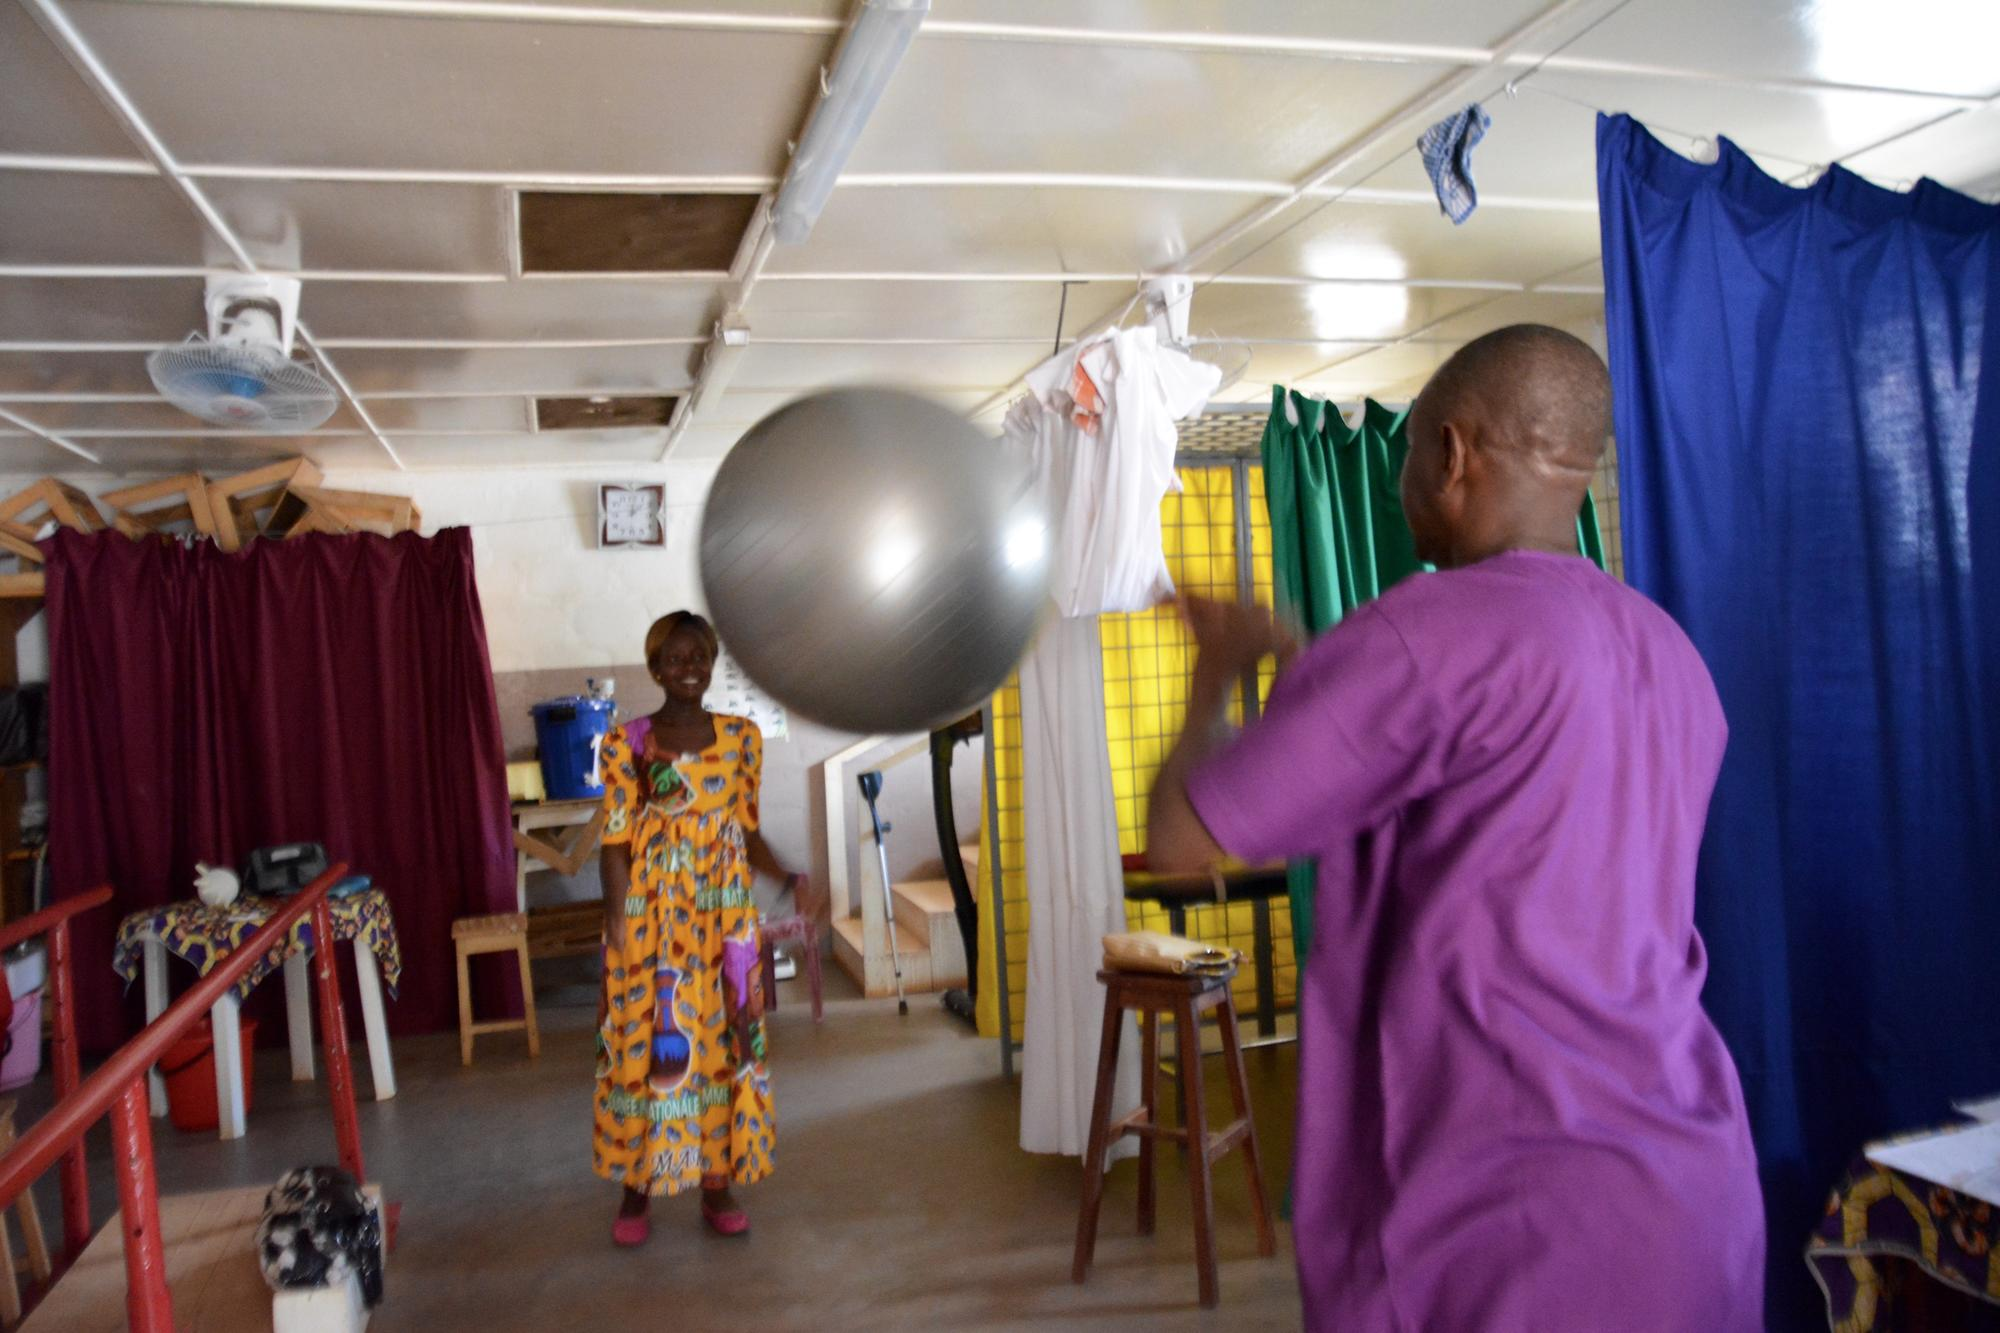 Physiotherapy at SICA hospital, Bangui